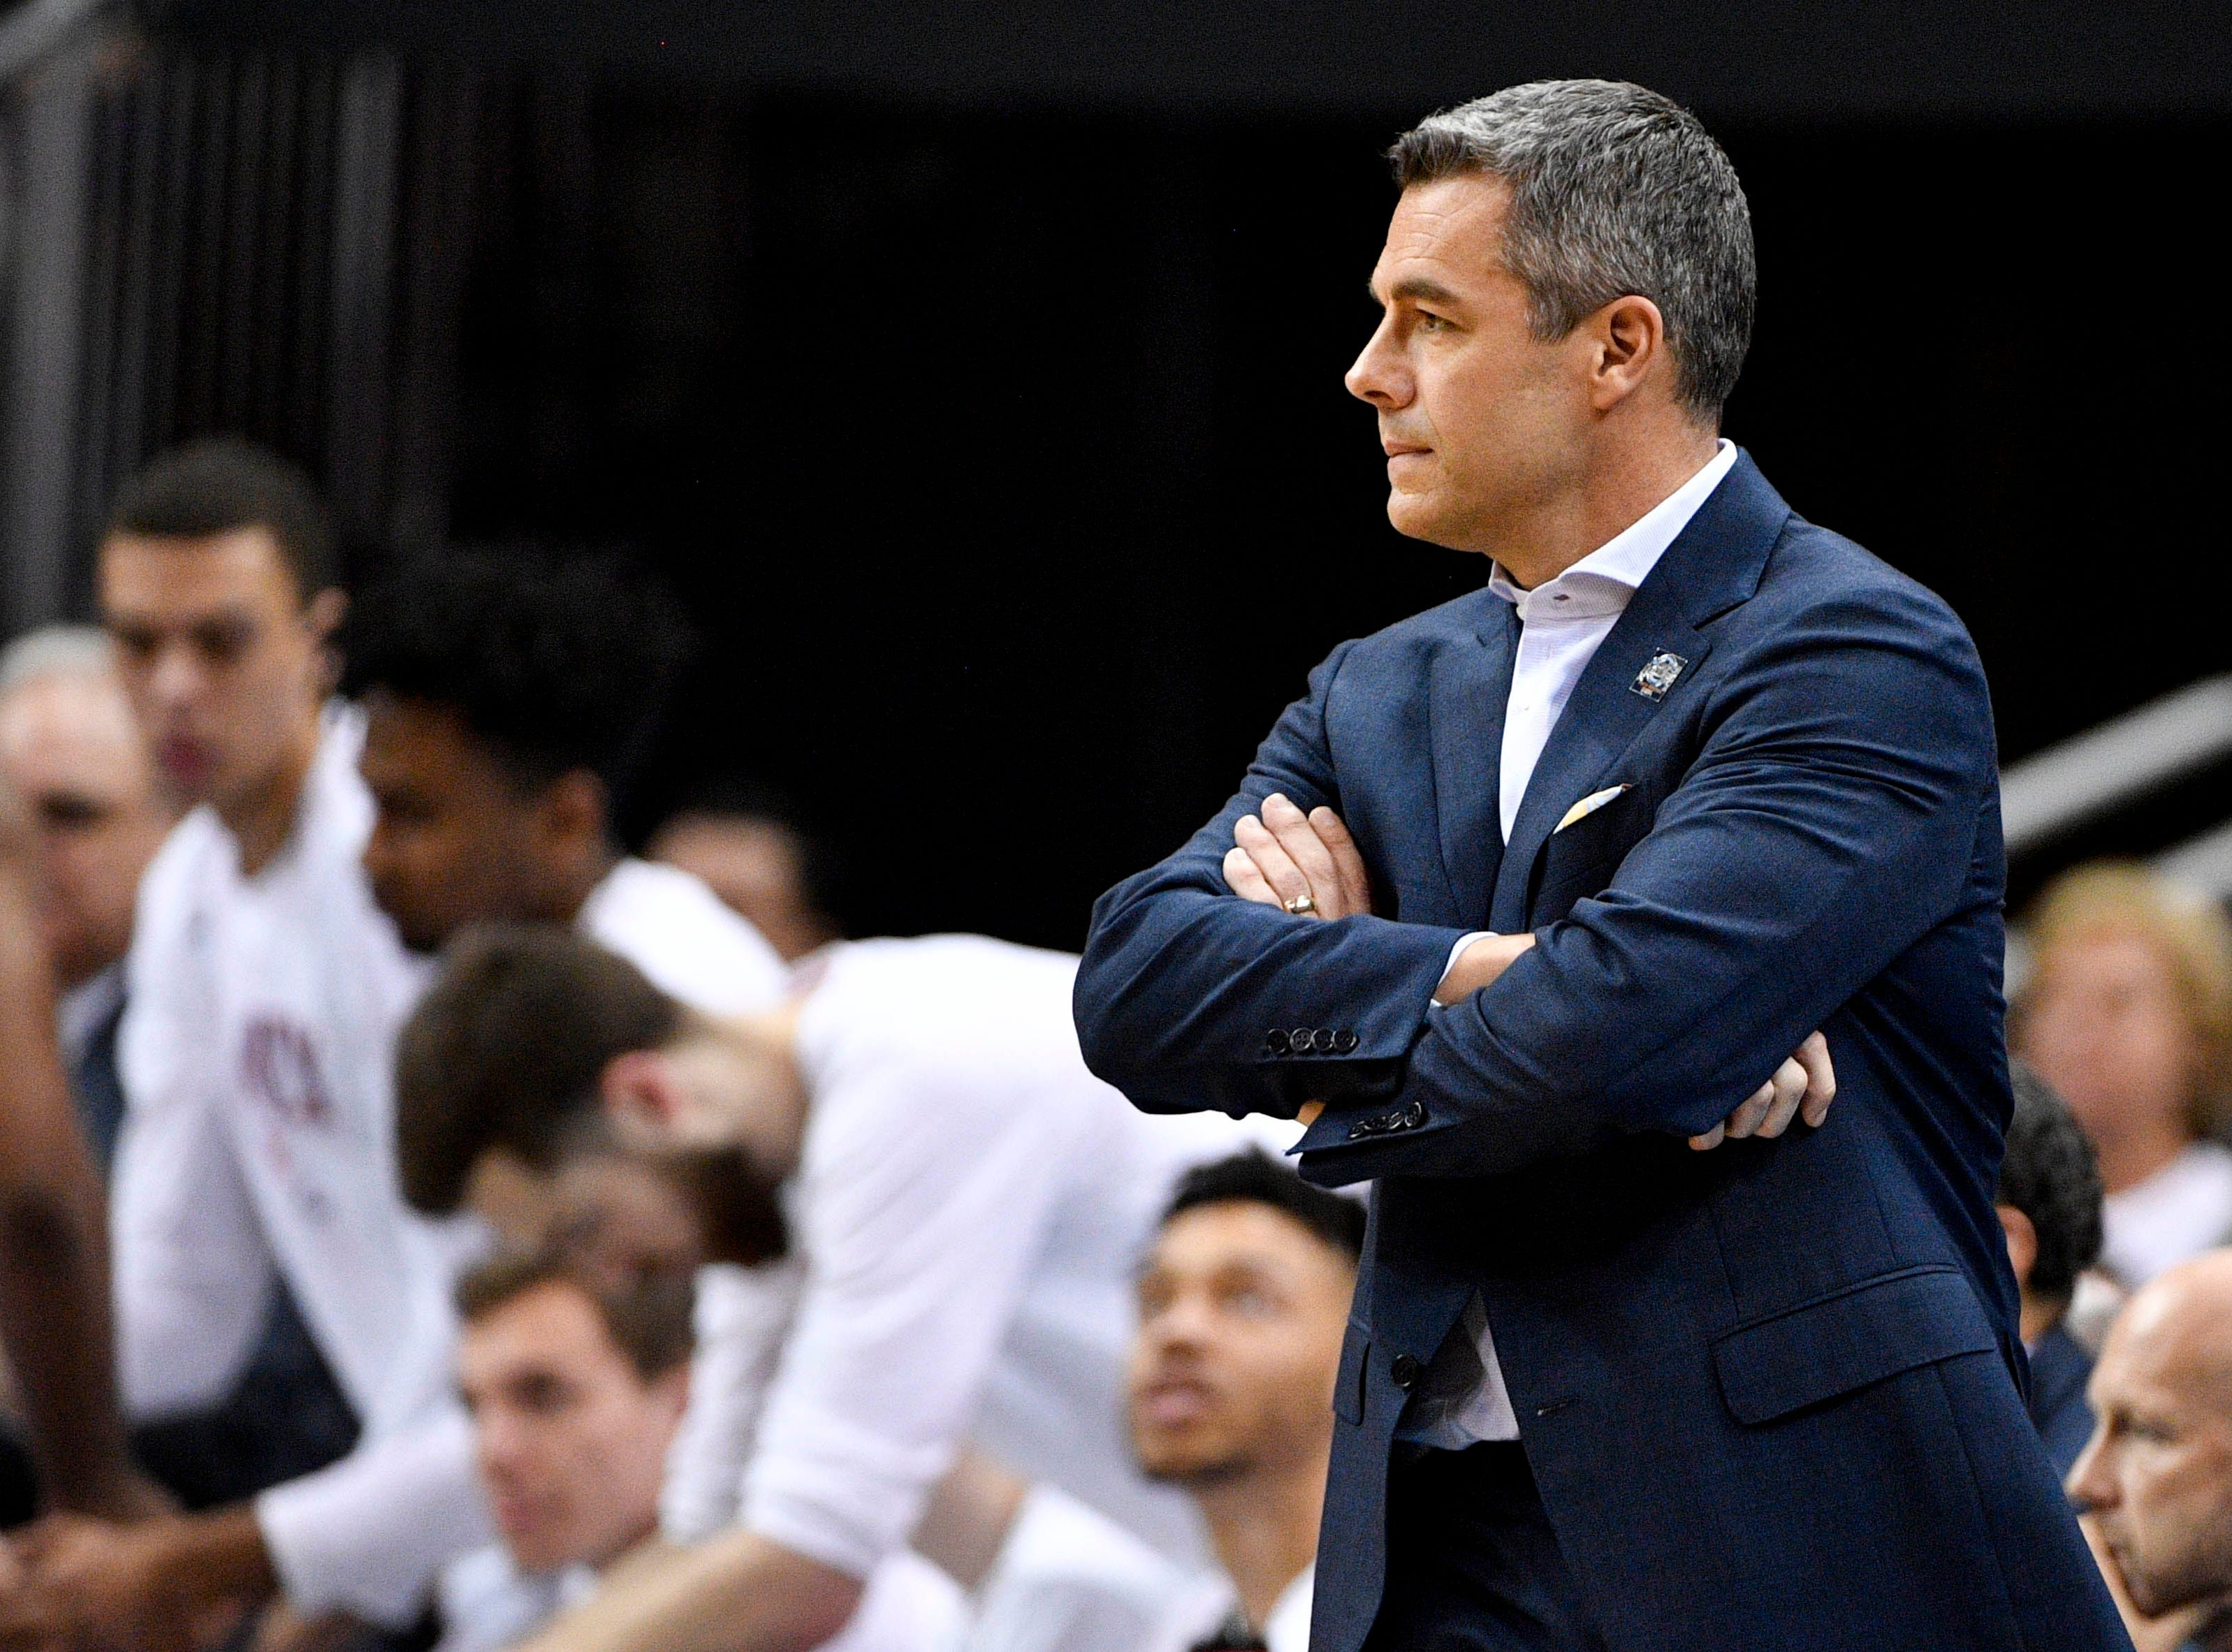 Mar 30, 2019; Louisville, KY, United States; Virginia Cavaliers head coach Tony Bennett looks on during the first half in the championship game against the Purdue Boilermakers of the south regional of the 2019 NCAA Tournament at KFC Yum Center. Mandatory Credit: Jamie Rhodes-USA TODAY Sports